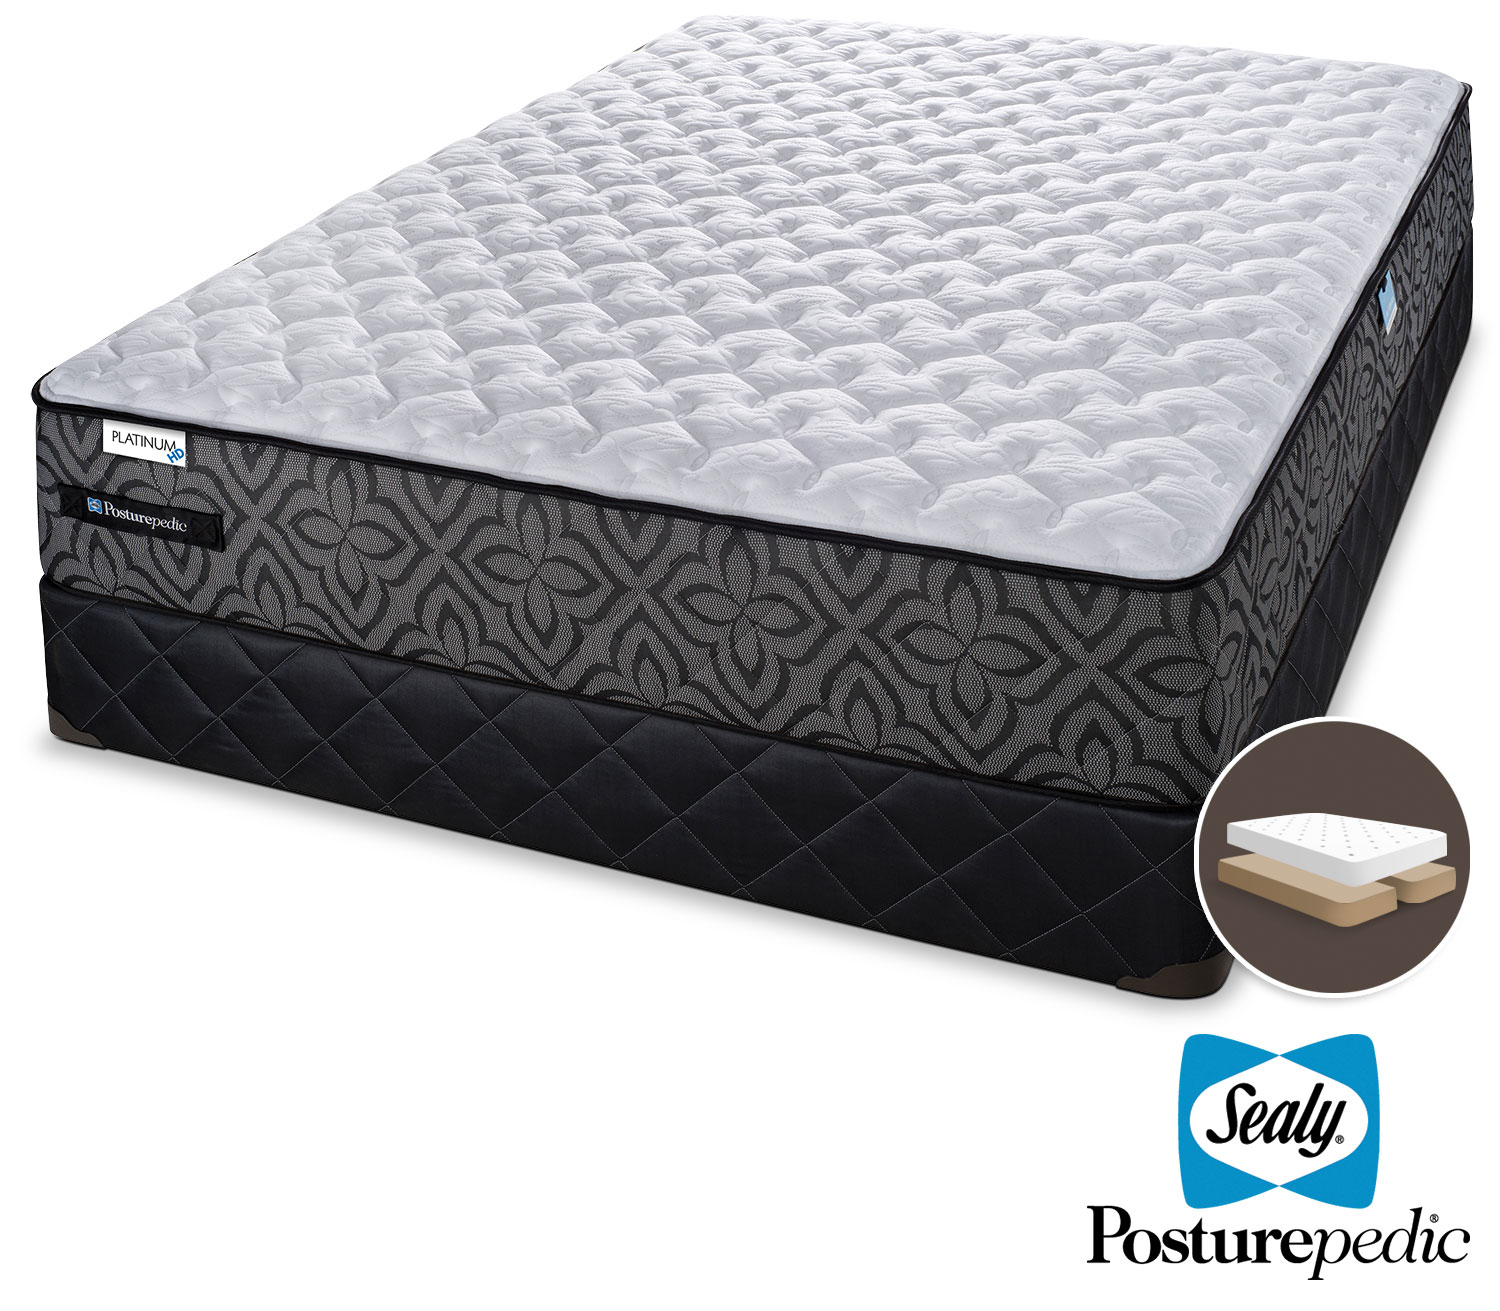 Mattresses and Bedding - Sealy Posturepedic 1 K Extra Firm King Mattress and Split Boxspring Set